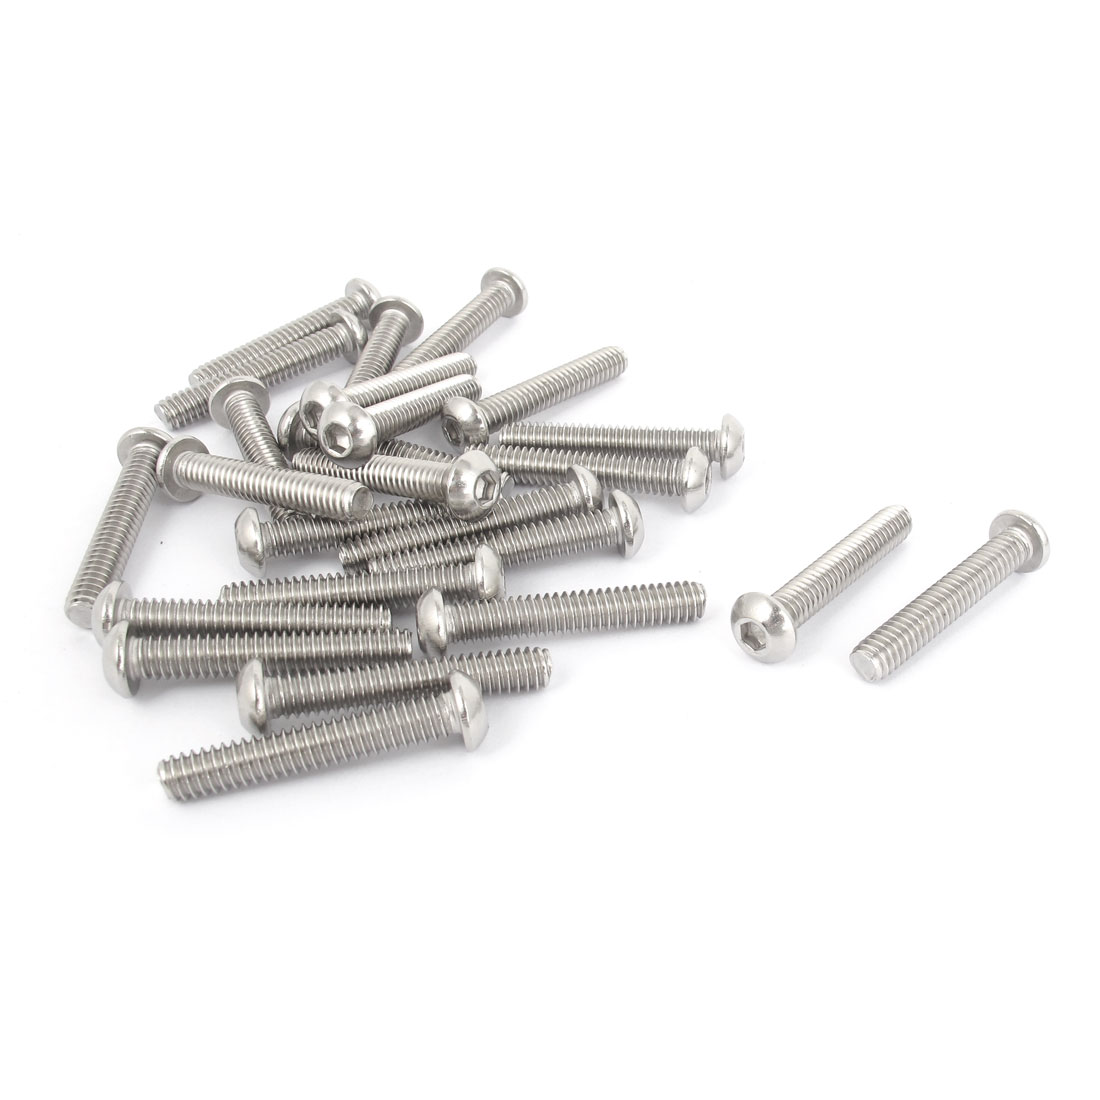 "25pcs 1/4""-20x1-1/2"" Stainless Steel Hex Socket Button Head Bolts Screws"